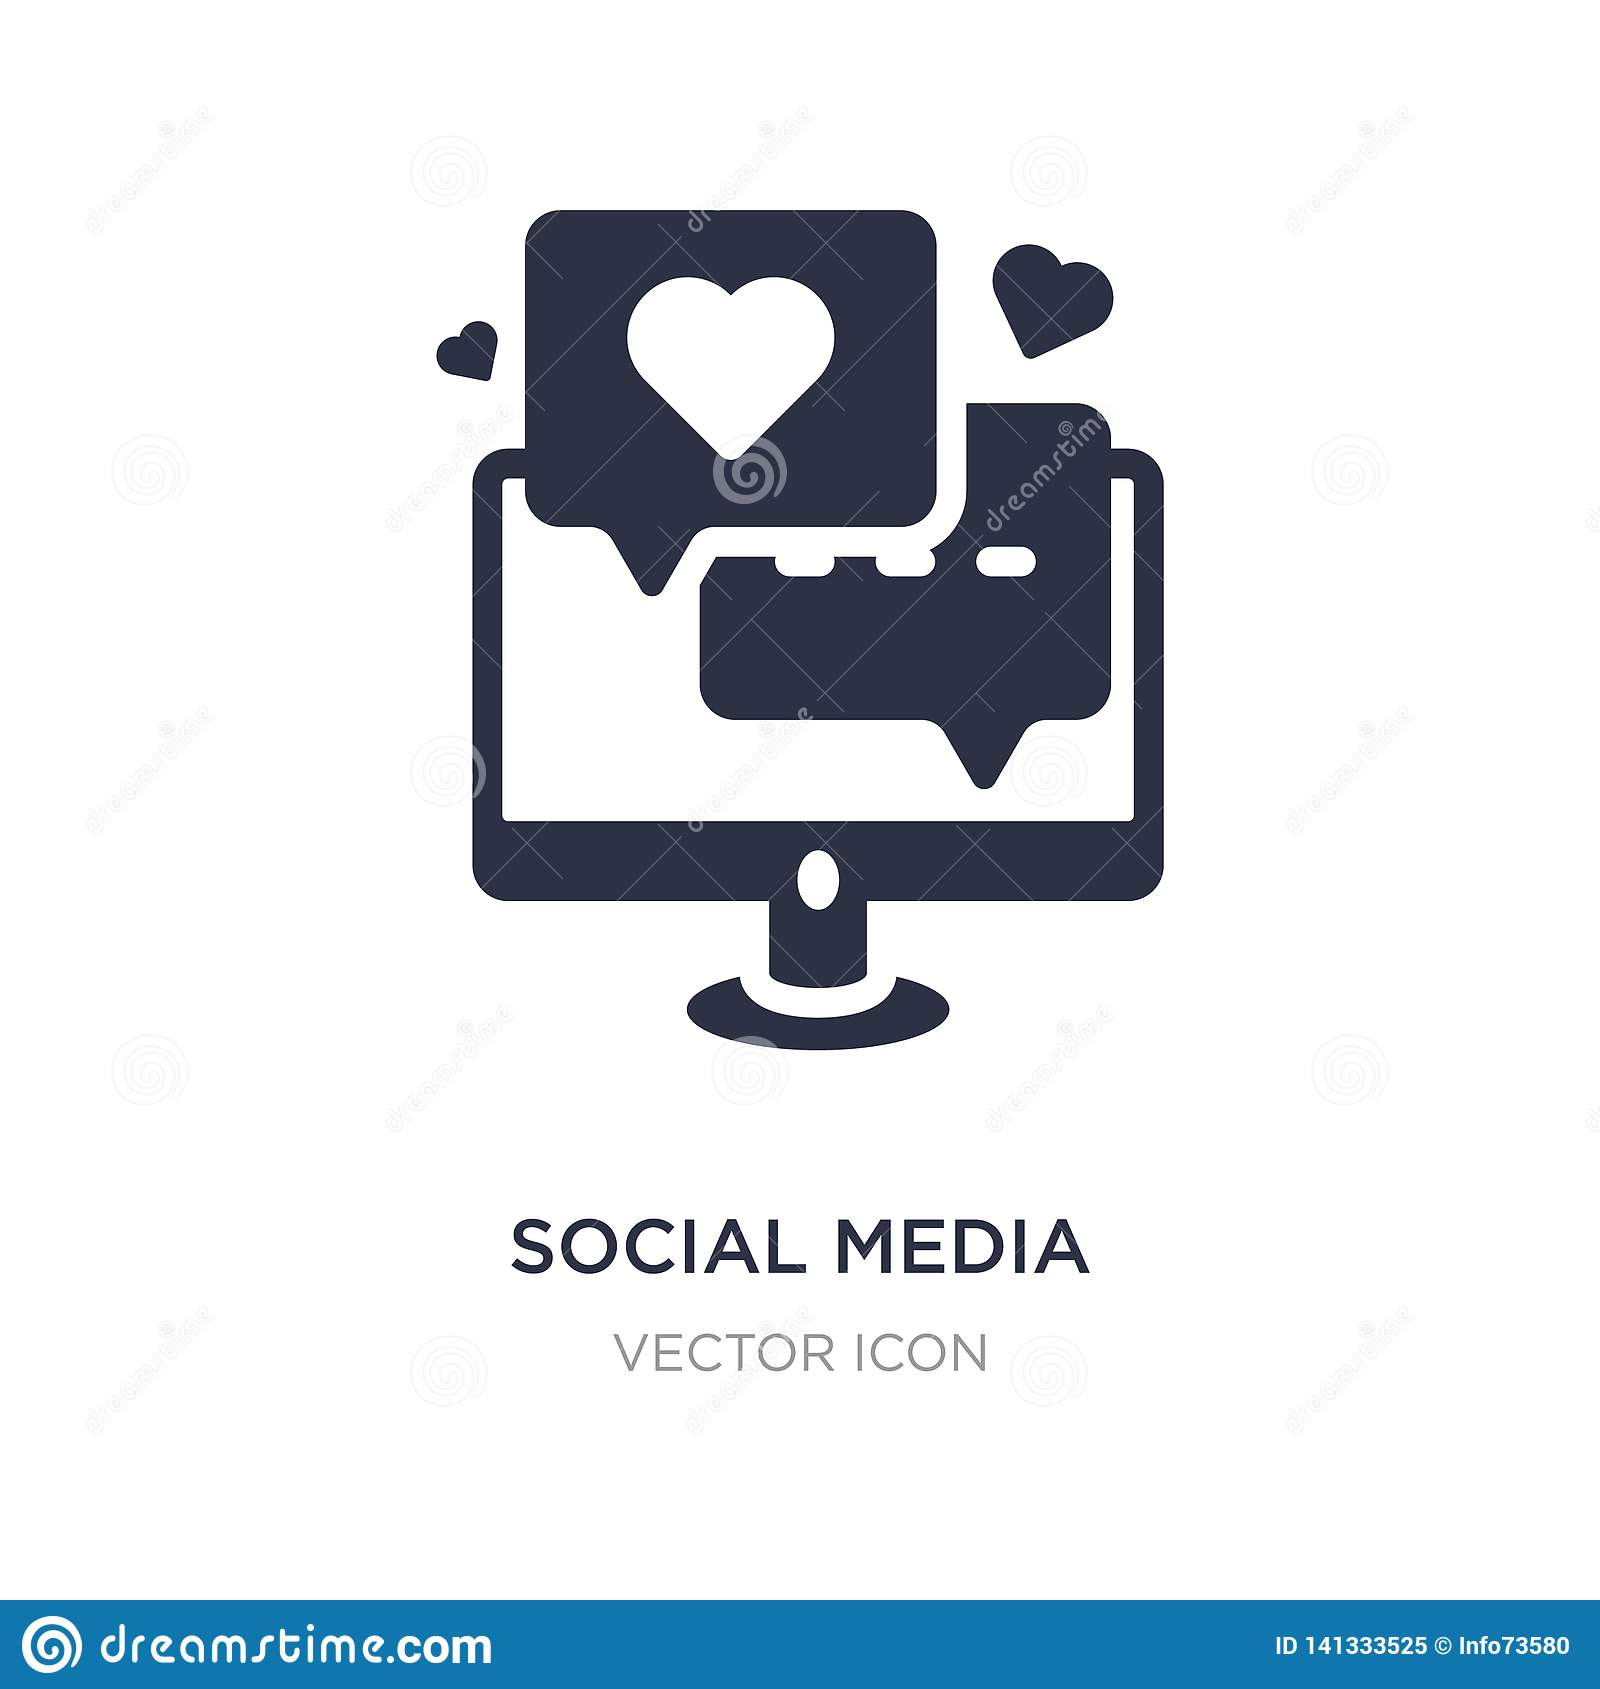 social media icon on white background. Simple element illustration from Digital economy concept